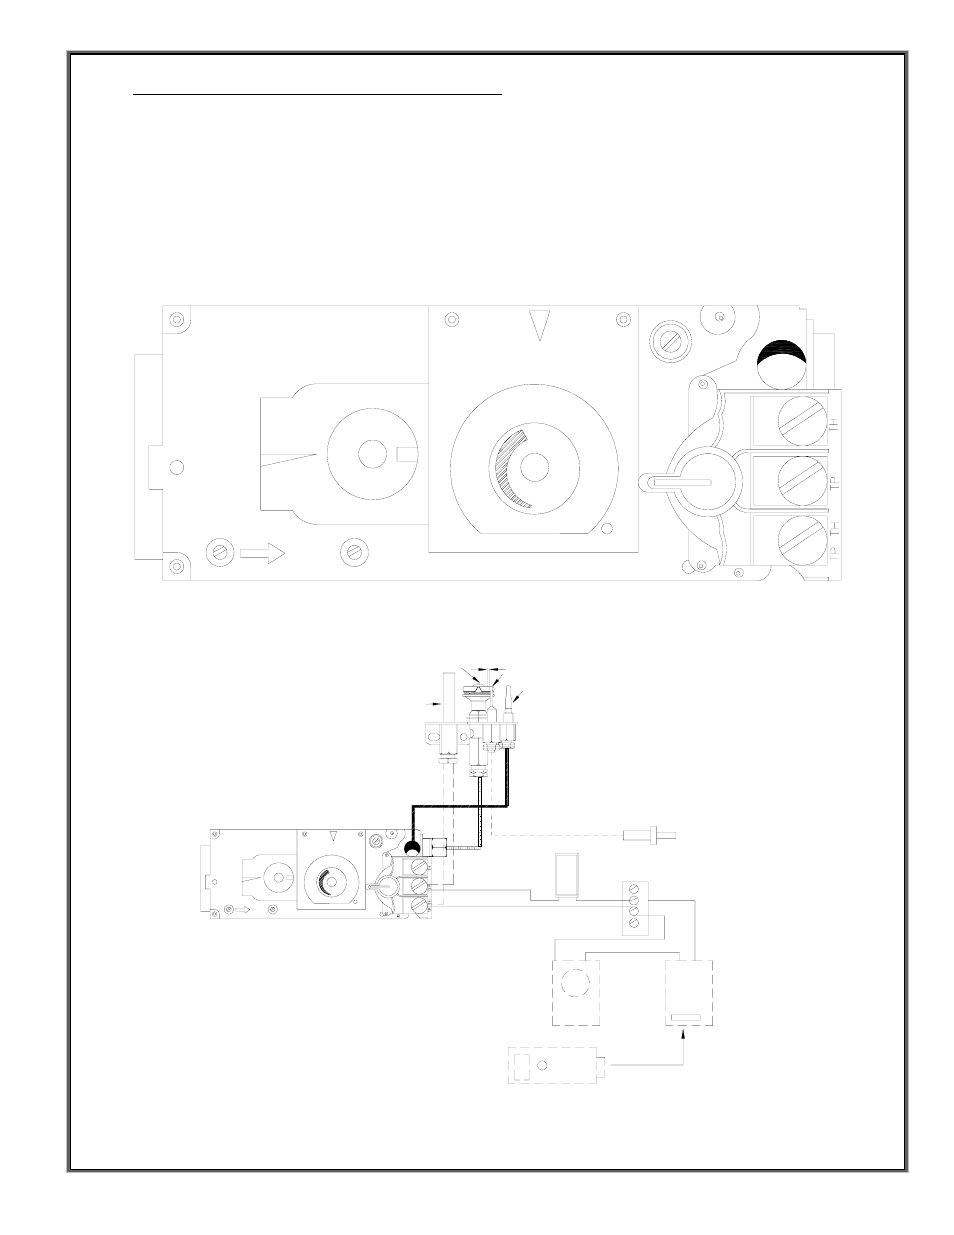 medium resolution of sit 820 nova mv gas control valve on off pilot hi lo version 1 0h 40 country flame bayvue dv 30 user manual page 41 48